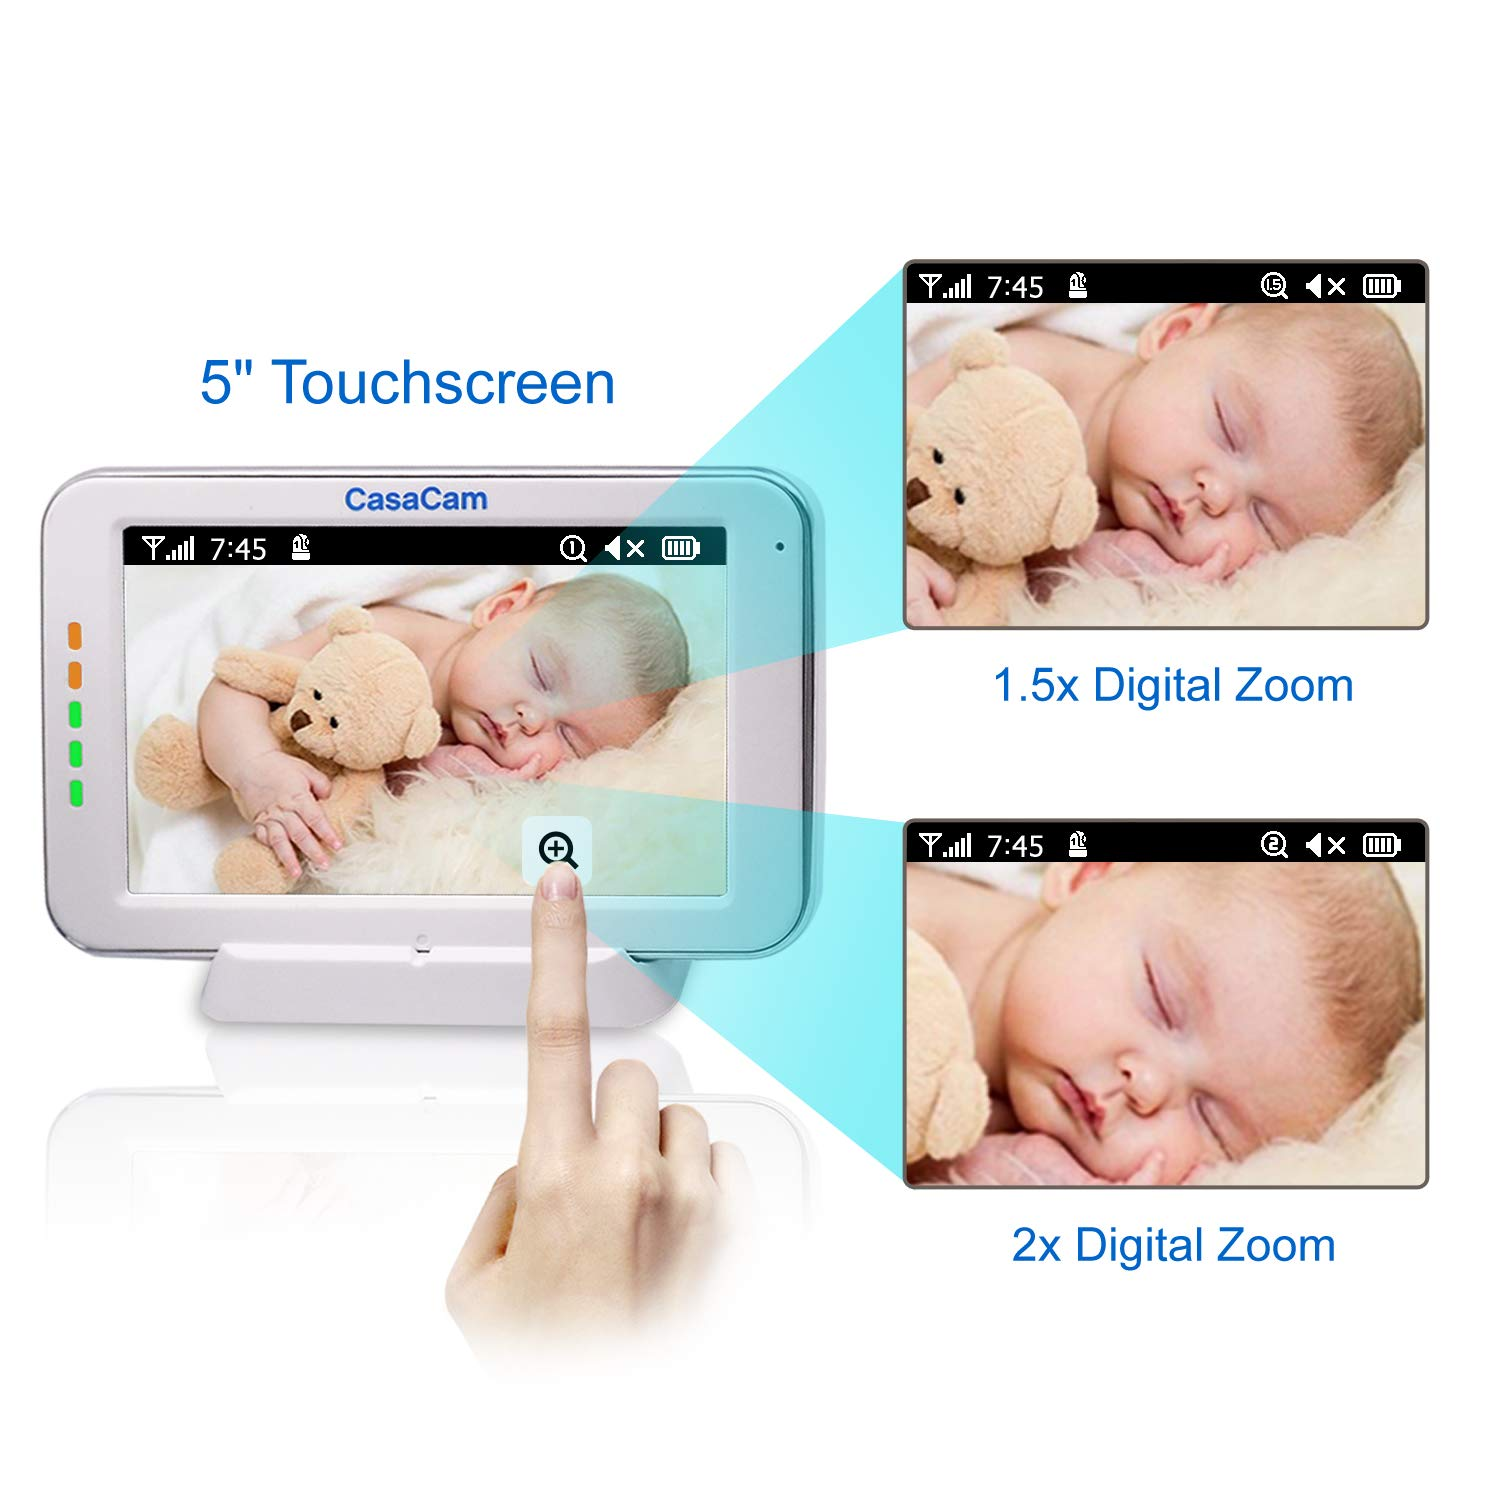 CasaCam BM200 Video Baby Monitor with 5'' Touchscreen and HD Pan & Tilt Camera, Two Way Audio, Lullabies, Nightlight, Automatic Night Vision and Temperature Monitoring Capability (1-cam kit) by CasaCam (Image #8)